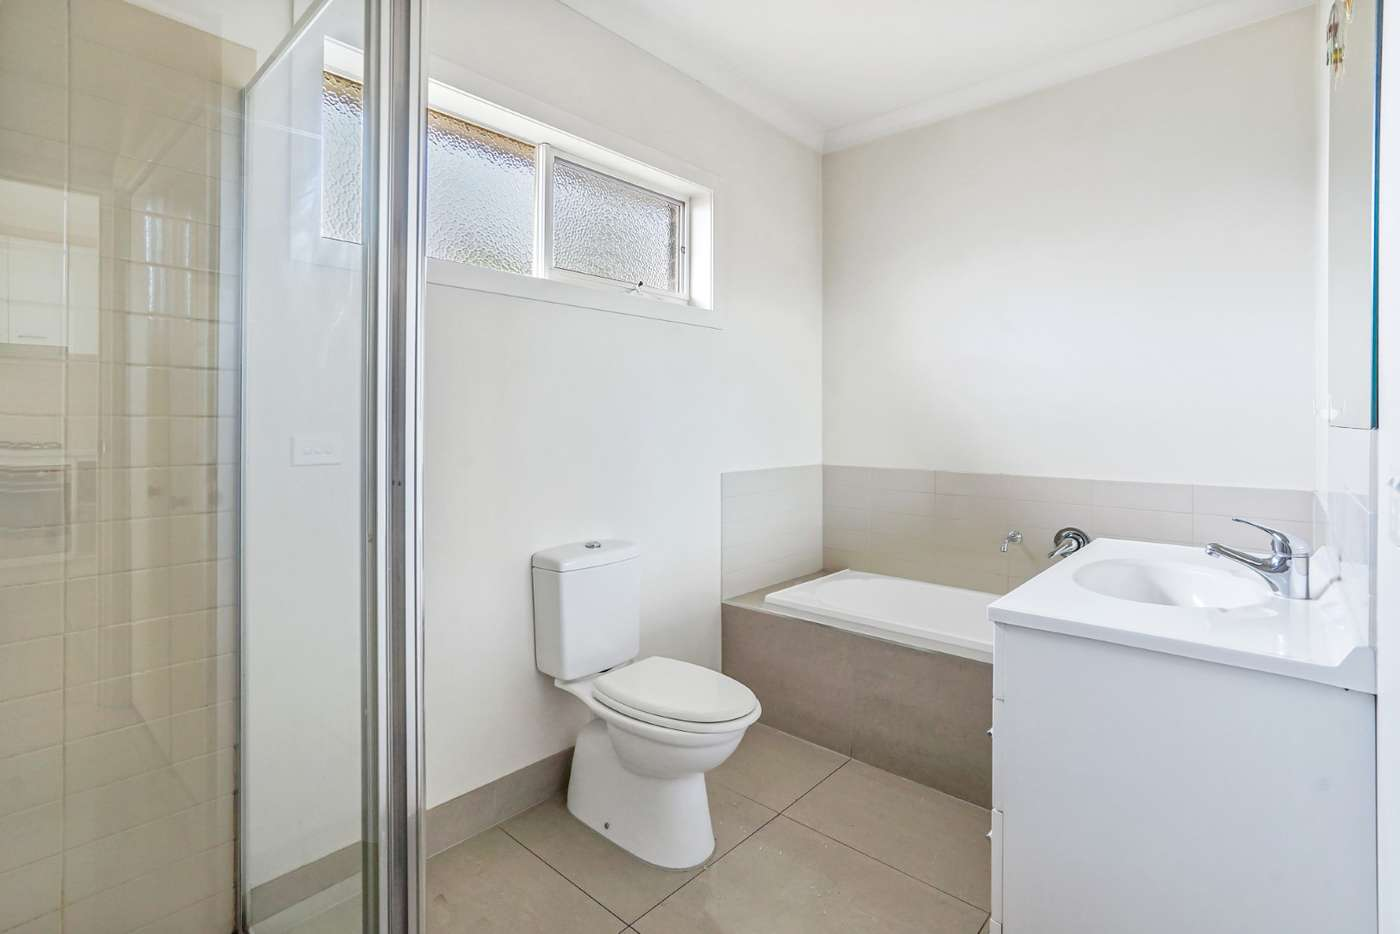 Sixth view of Homely townhouse listing, 3/60 Noble Street, Noble Park VIC 3174